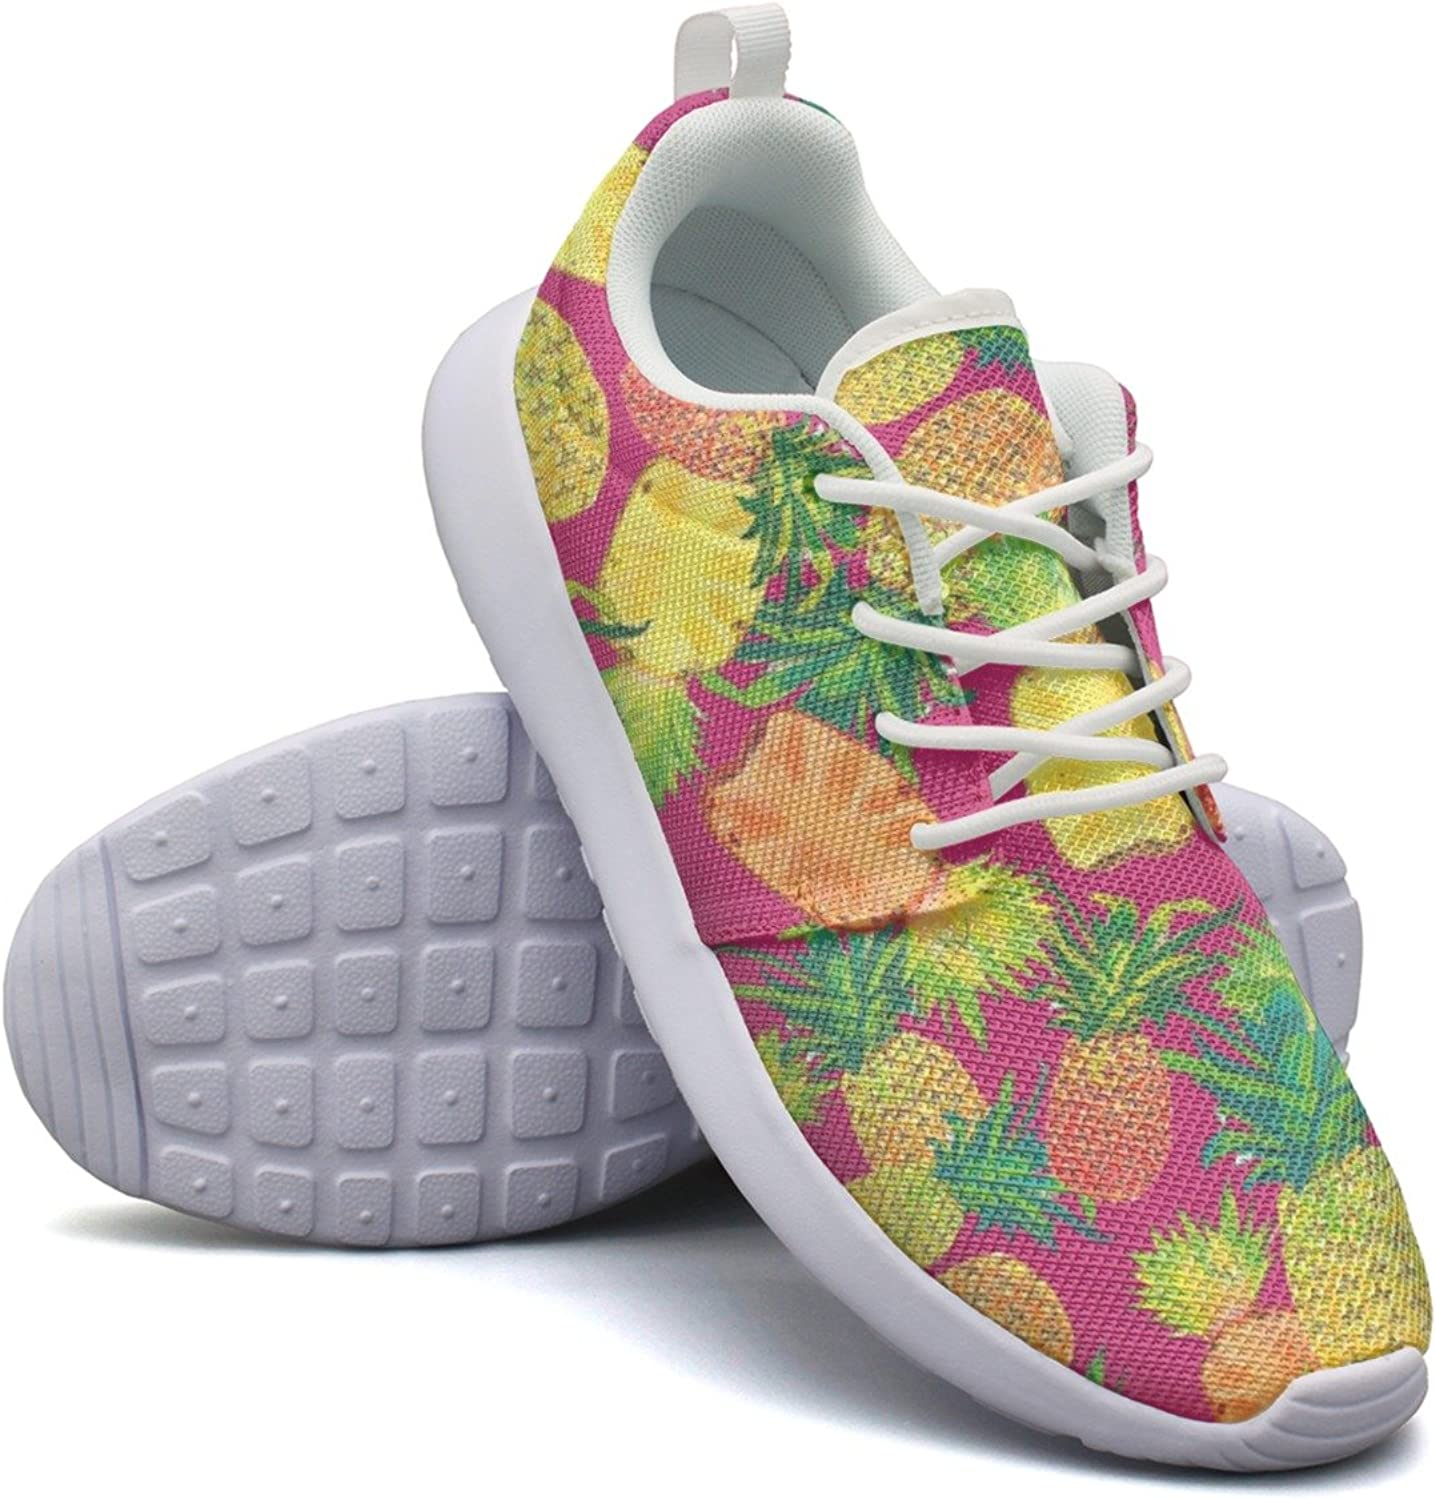 Womens Pineapple Slices colorful Cool Hunting Fashion Running shoes